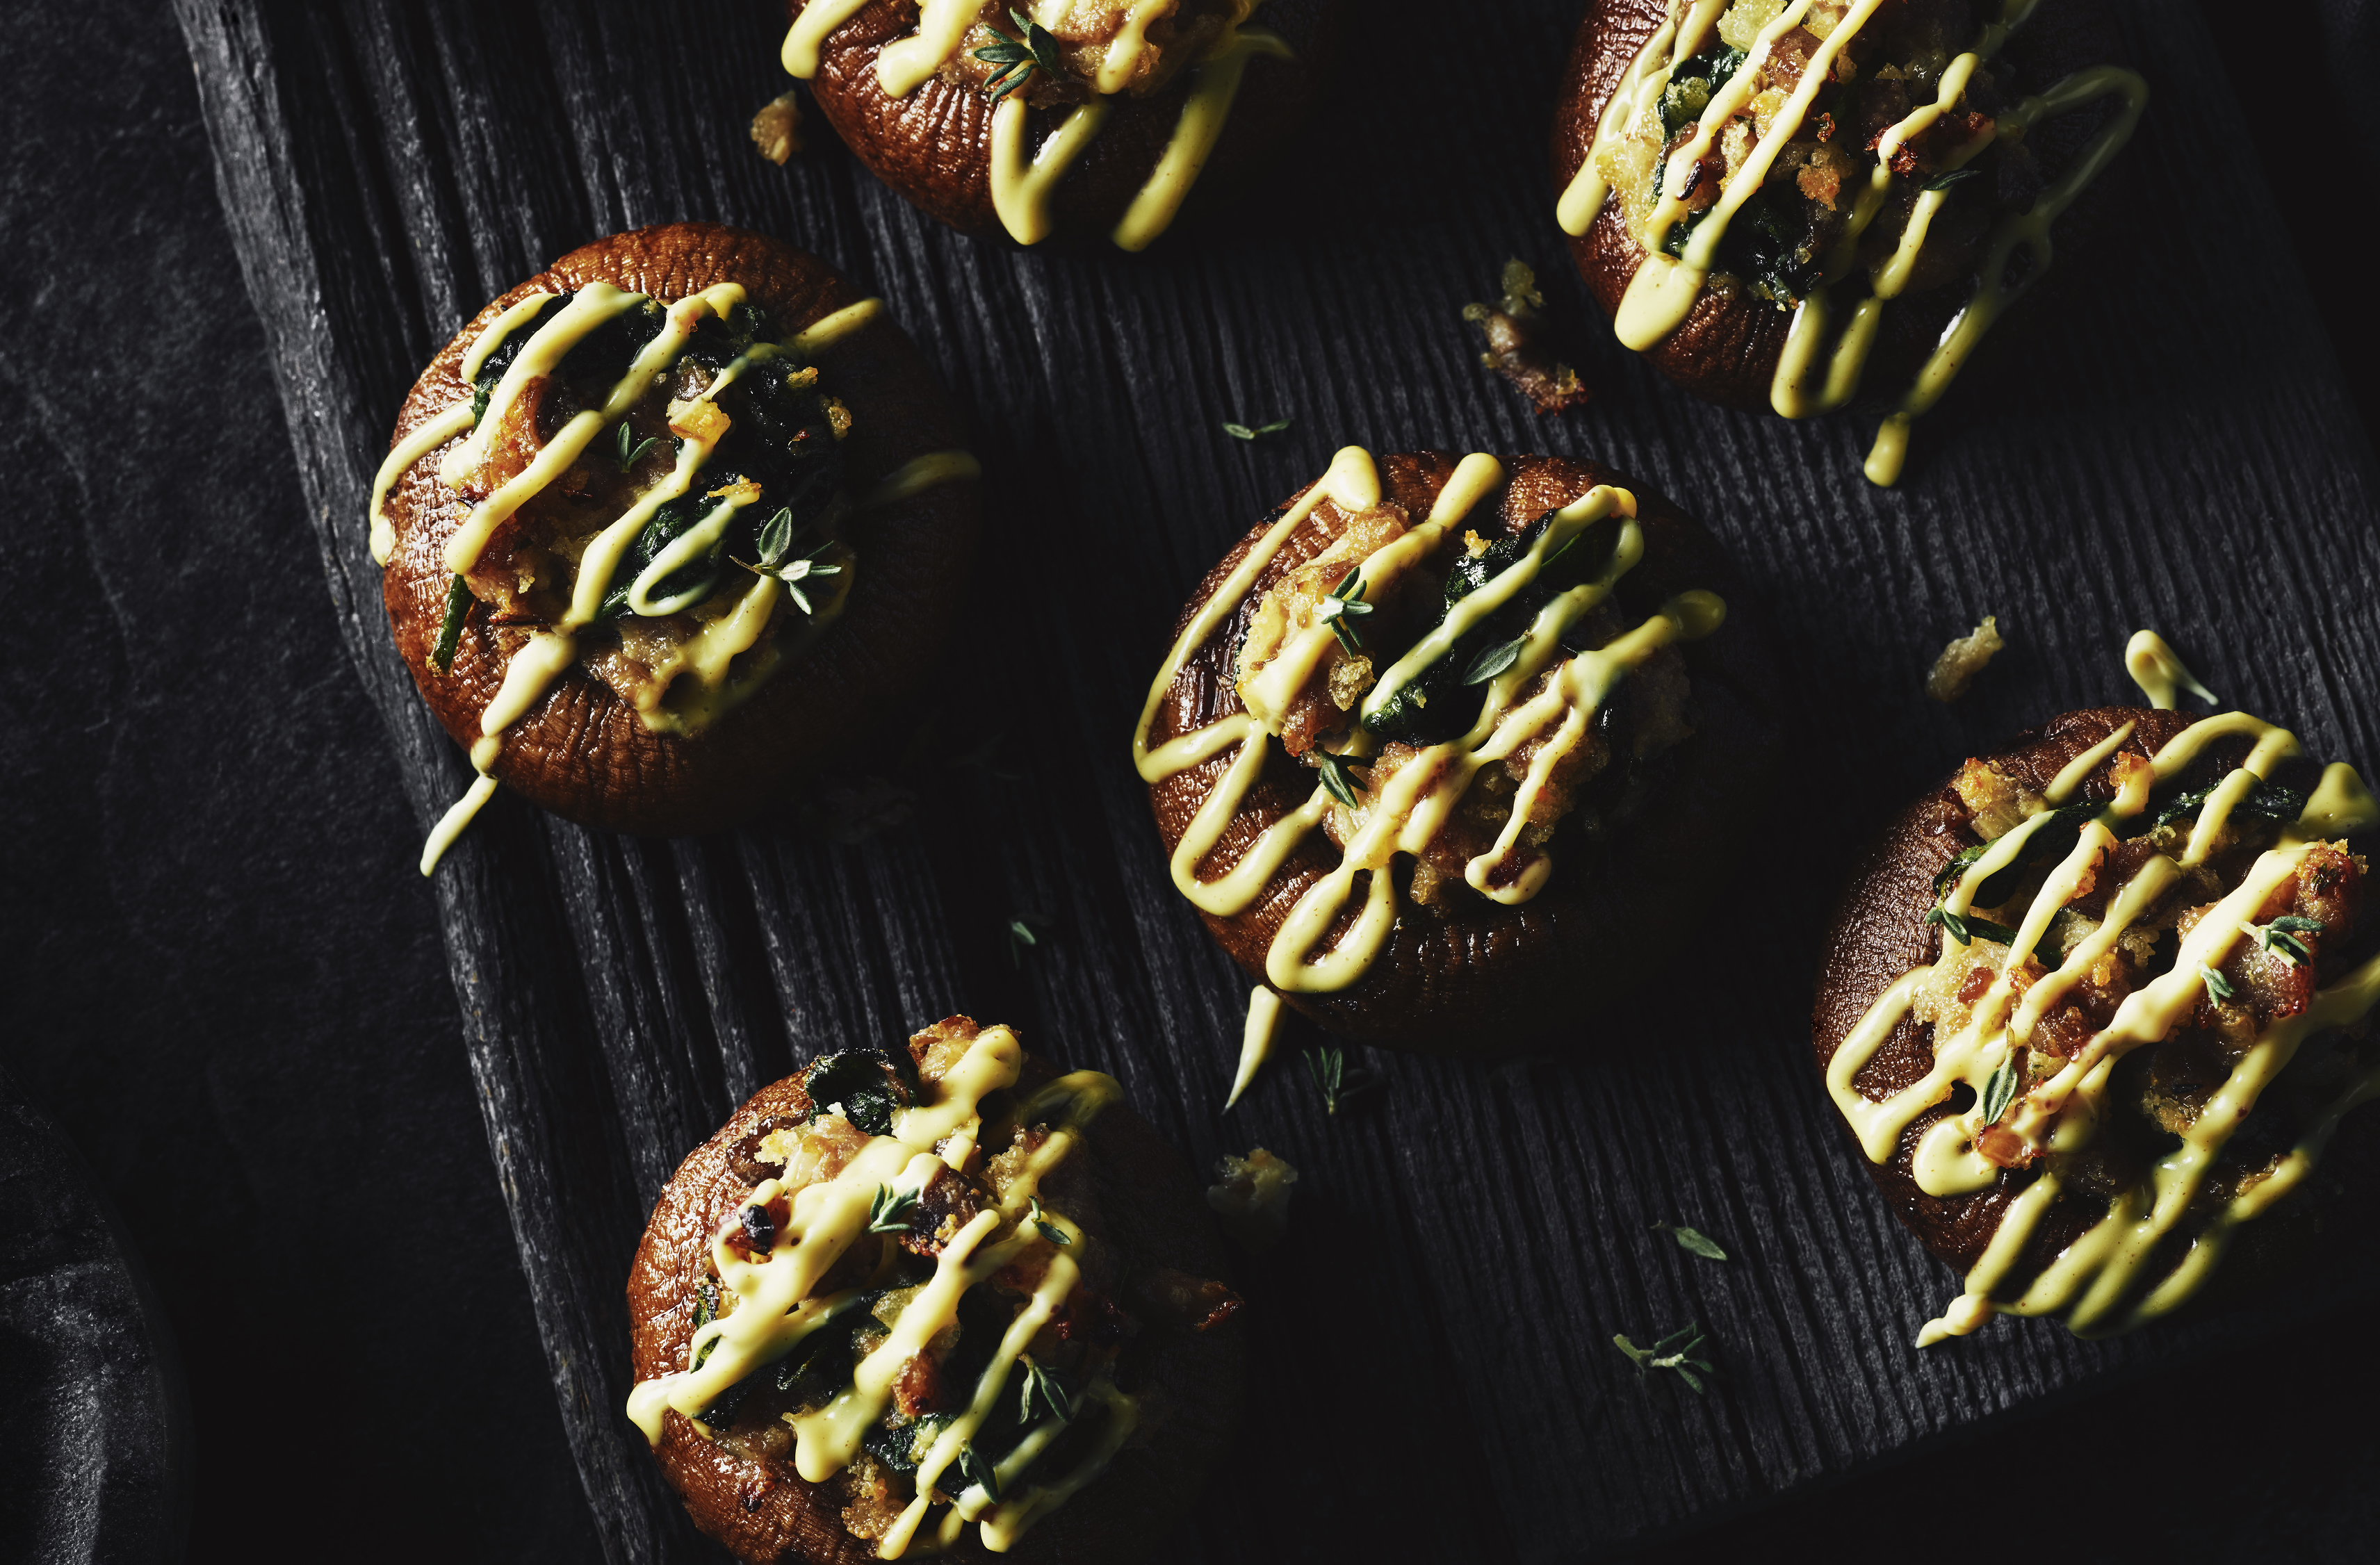 Sausage - stuffed mushroom caps drizzled with hollandaise sauce